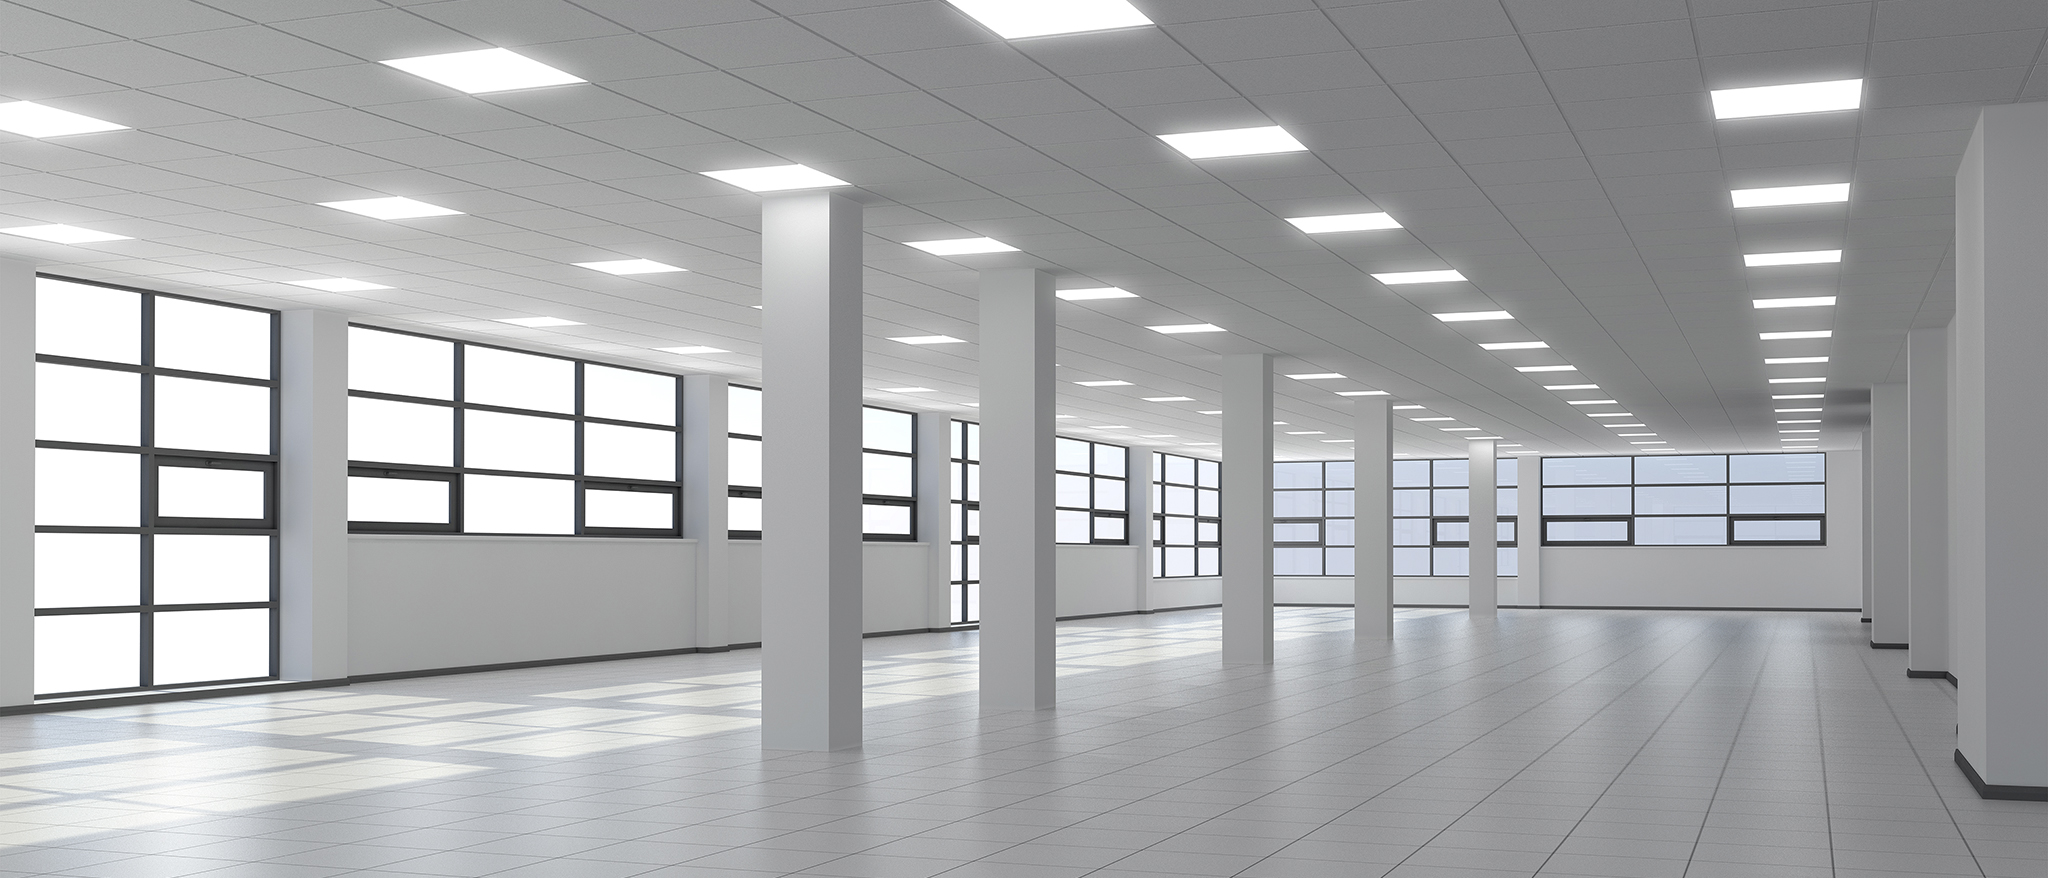 led verlichting in systeemplafond